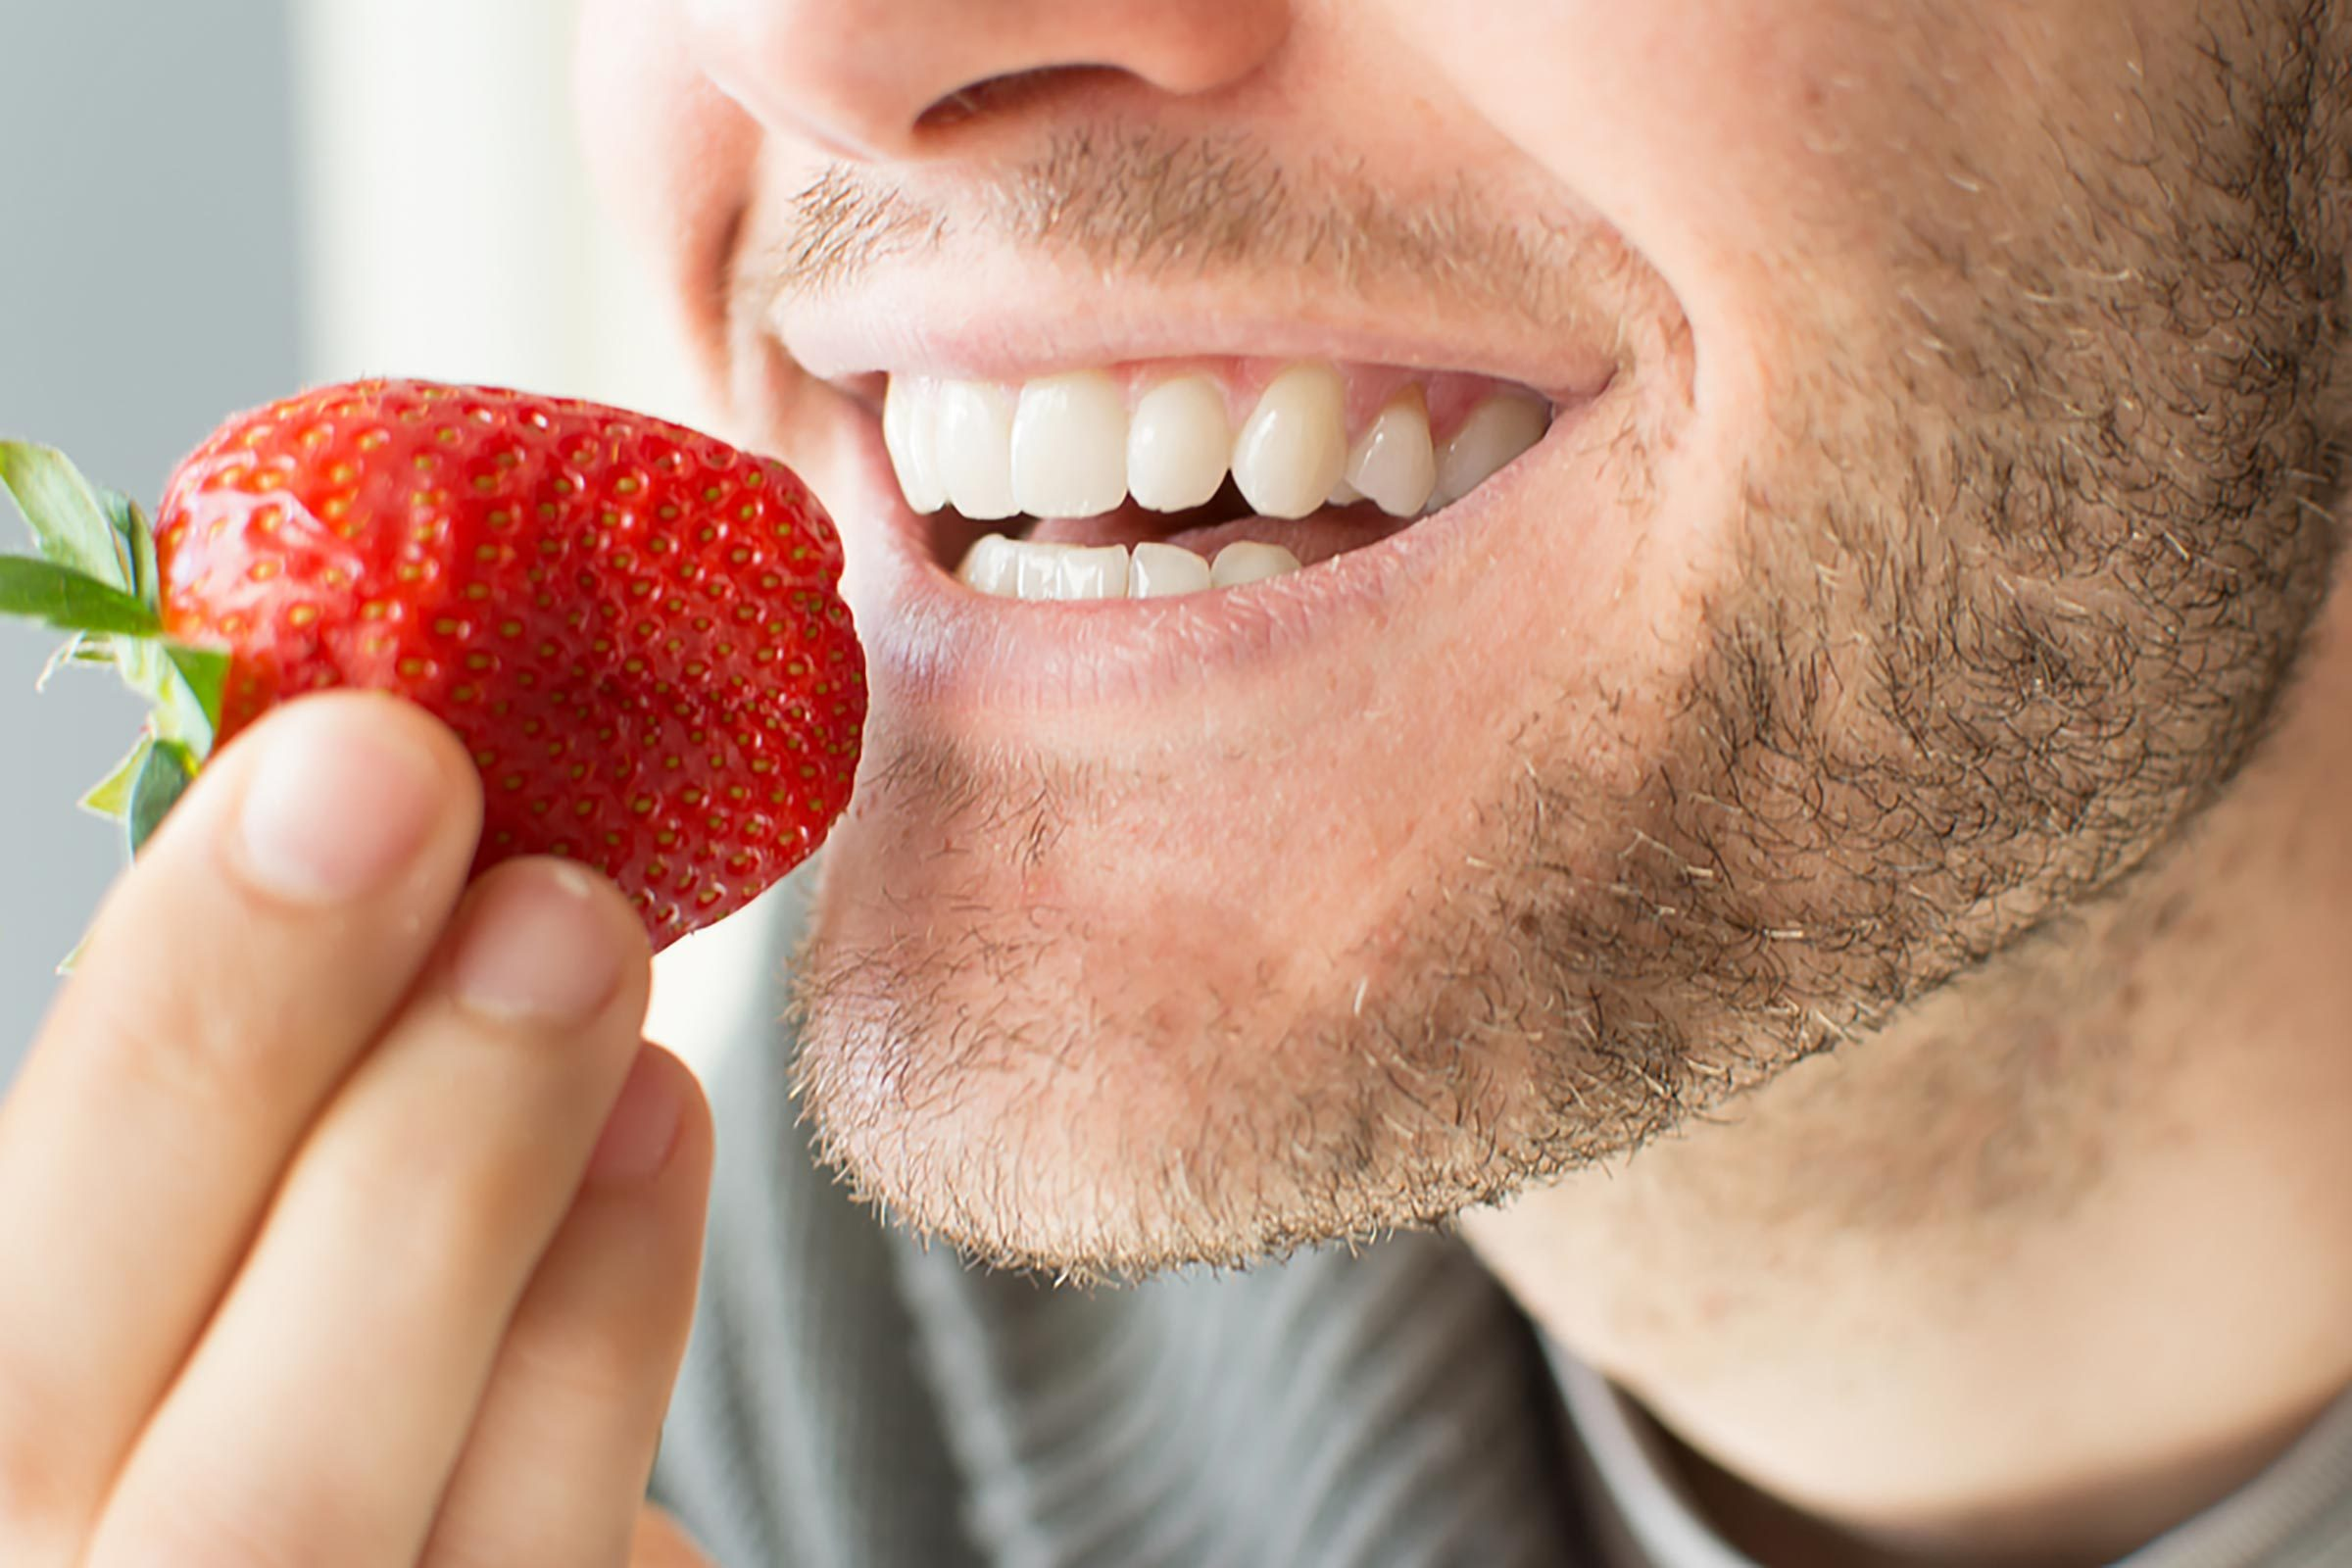 teeth biting a strawberry